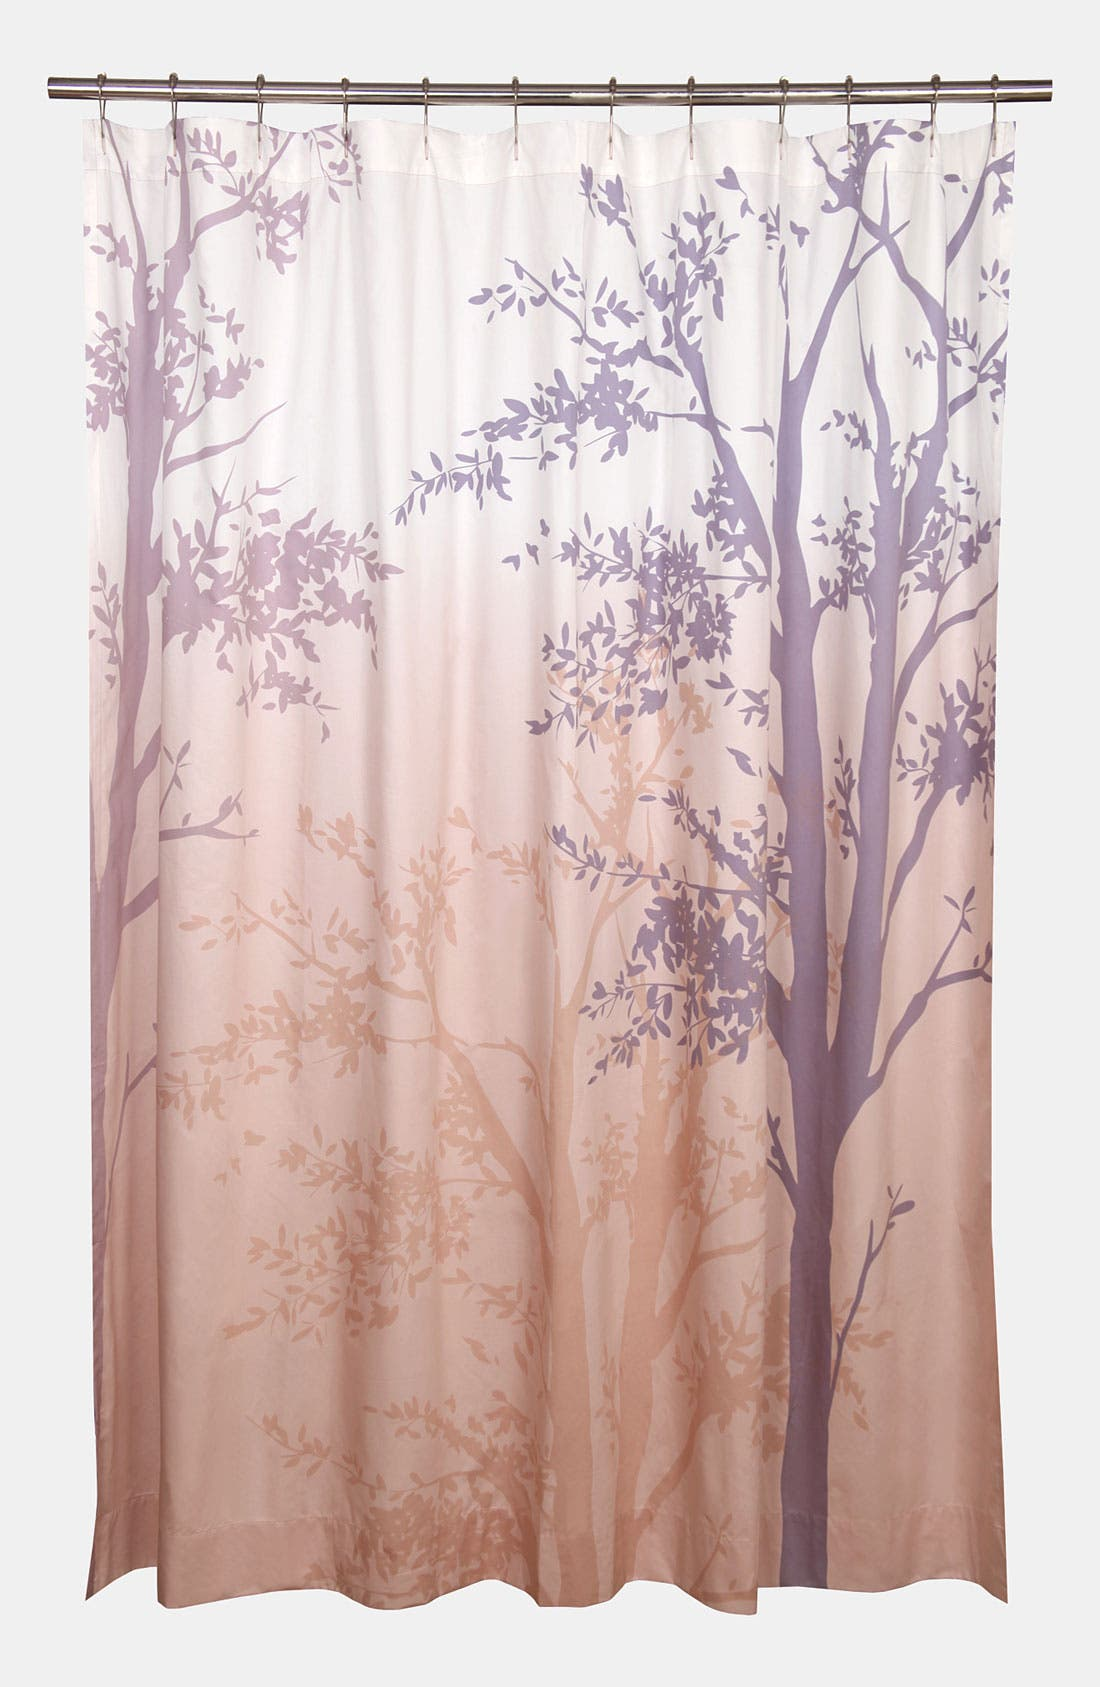 Alternate Image 1 Selected - Blissliving Home 'Amelie Blush' Shower Curtain (Online Only)